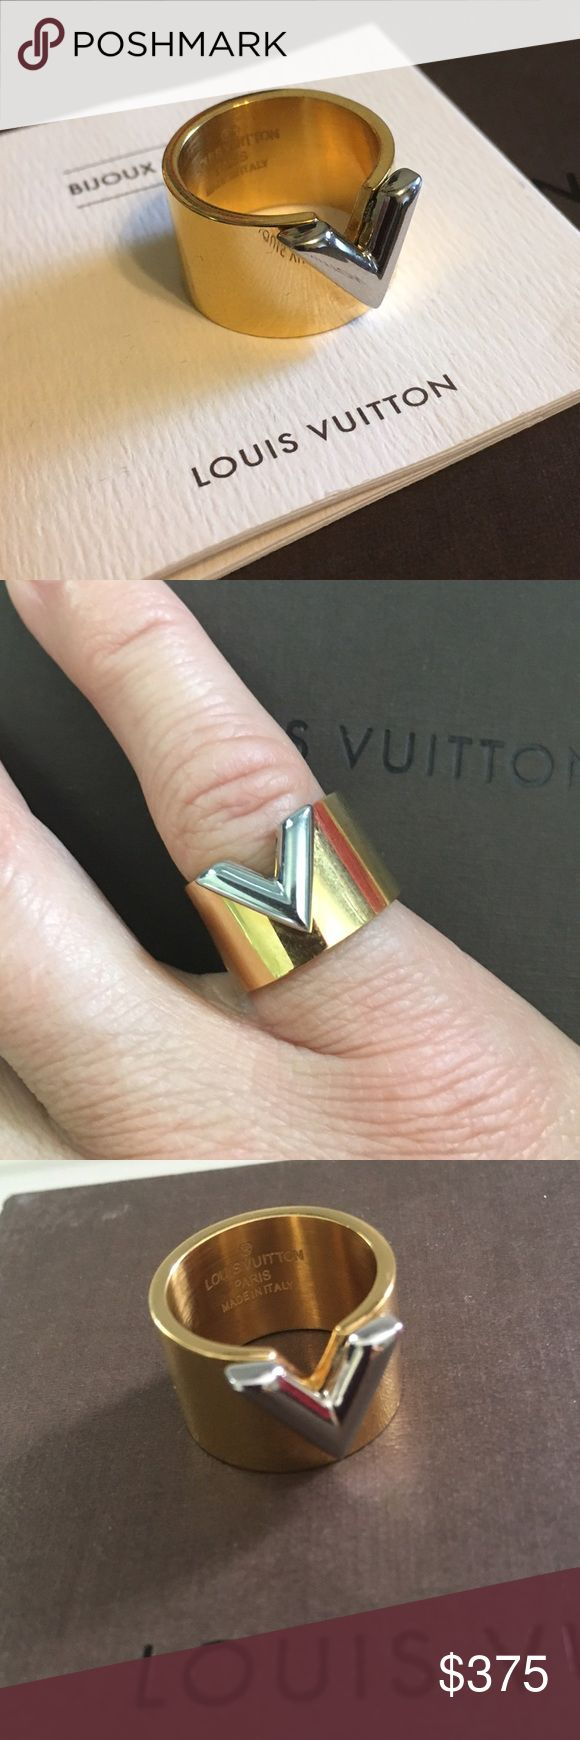 Louis Vuitton V Ring Lovely Louis Vuitton ring. I would say around 5/6 in size:) If it fit my ring finger I would be keeping! Comes with Louis Vuitton pouch, booklet and box. Wonderful condition. Louis Vuitton Jewelry Rings